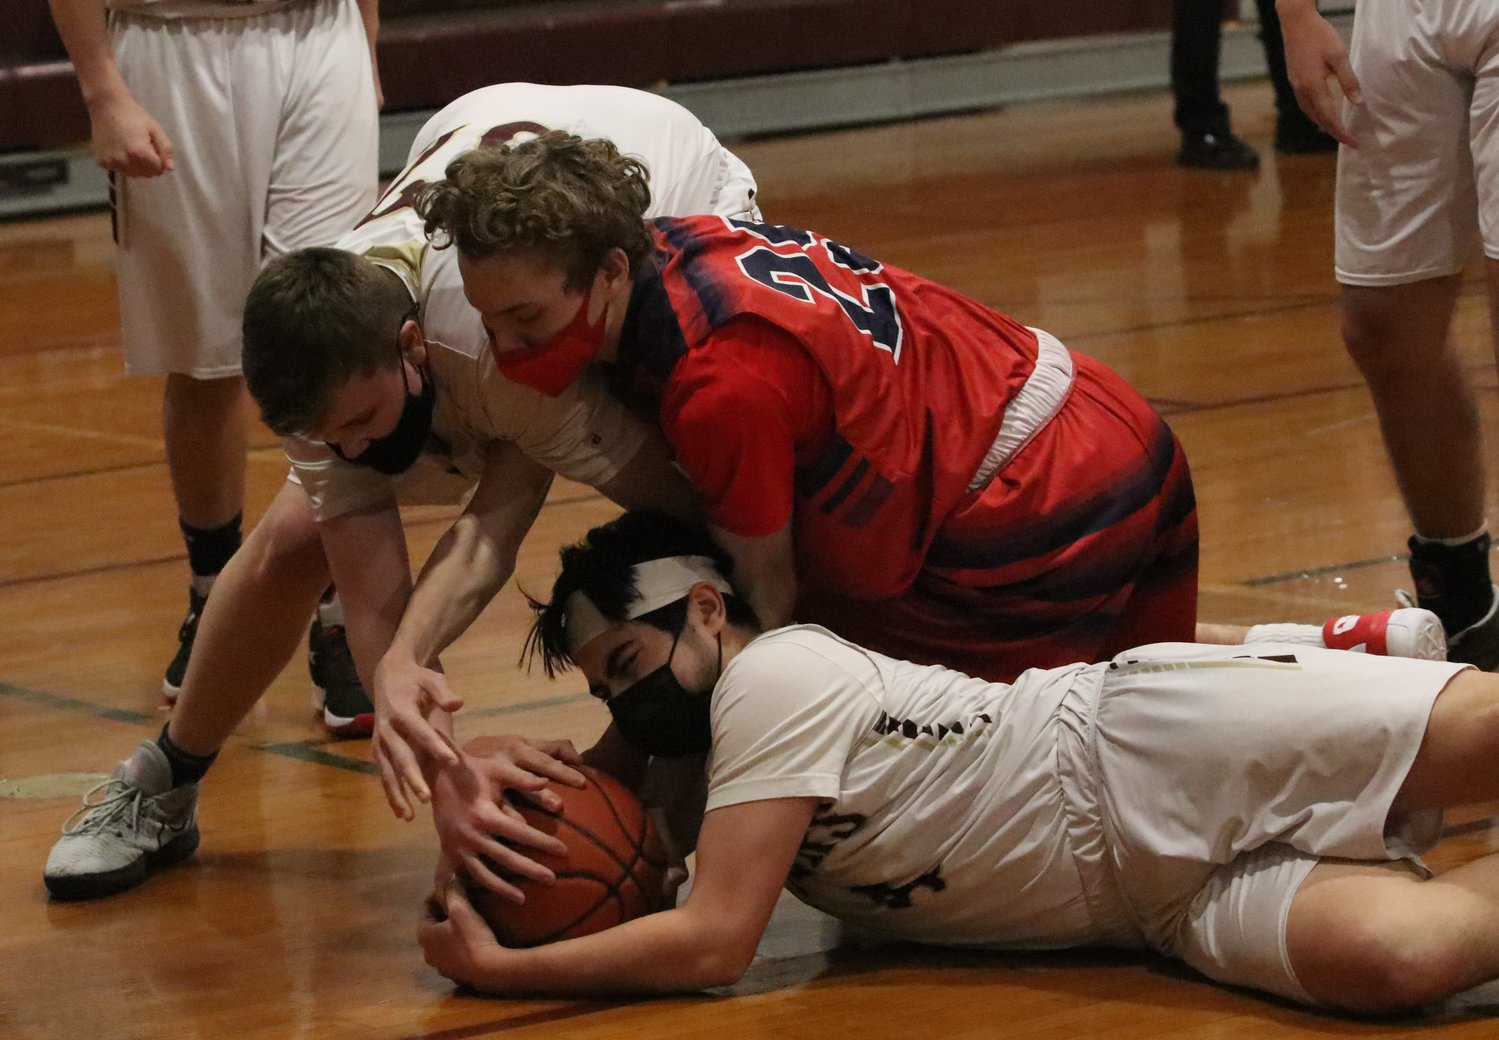 Sophomore forward Jason Potvin (left) reaches in as teammate, Junior guard Luke Deldeo grabs a loose ball on the floor in the defensive court.